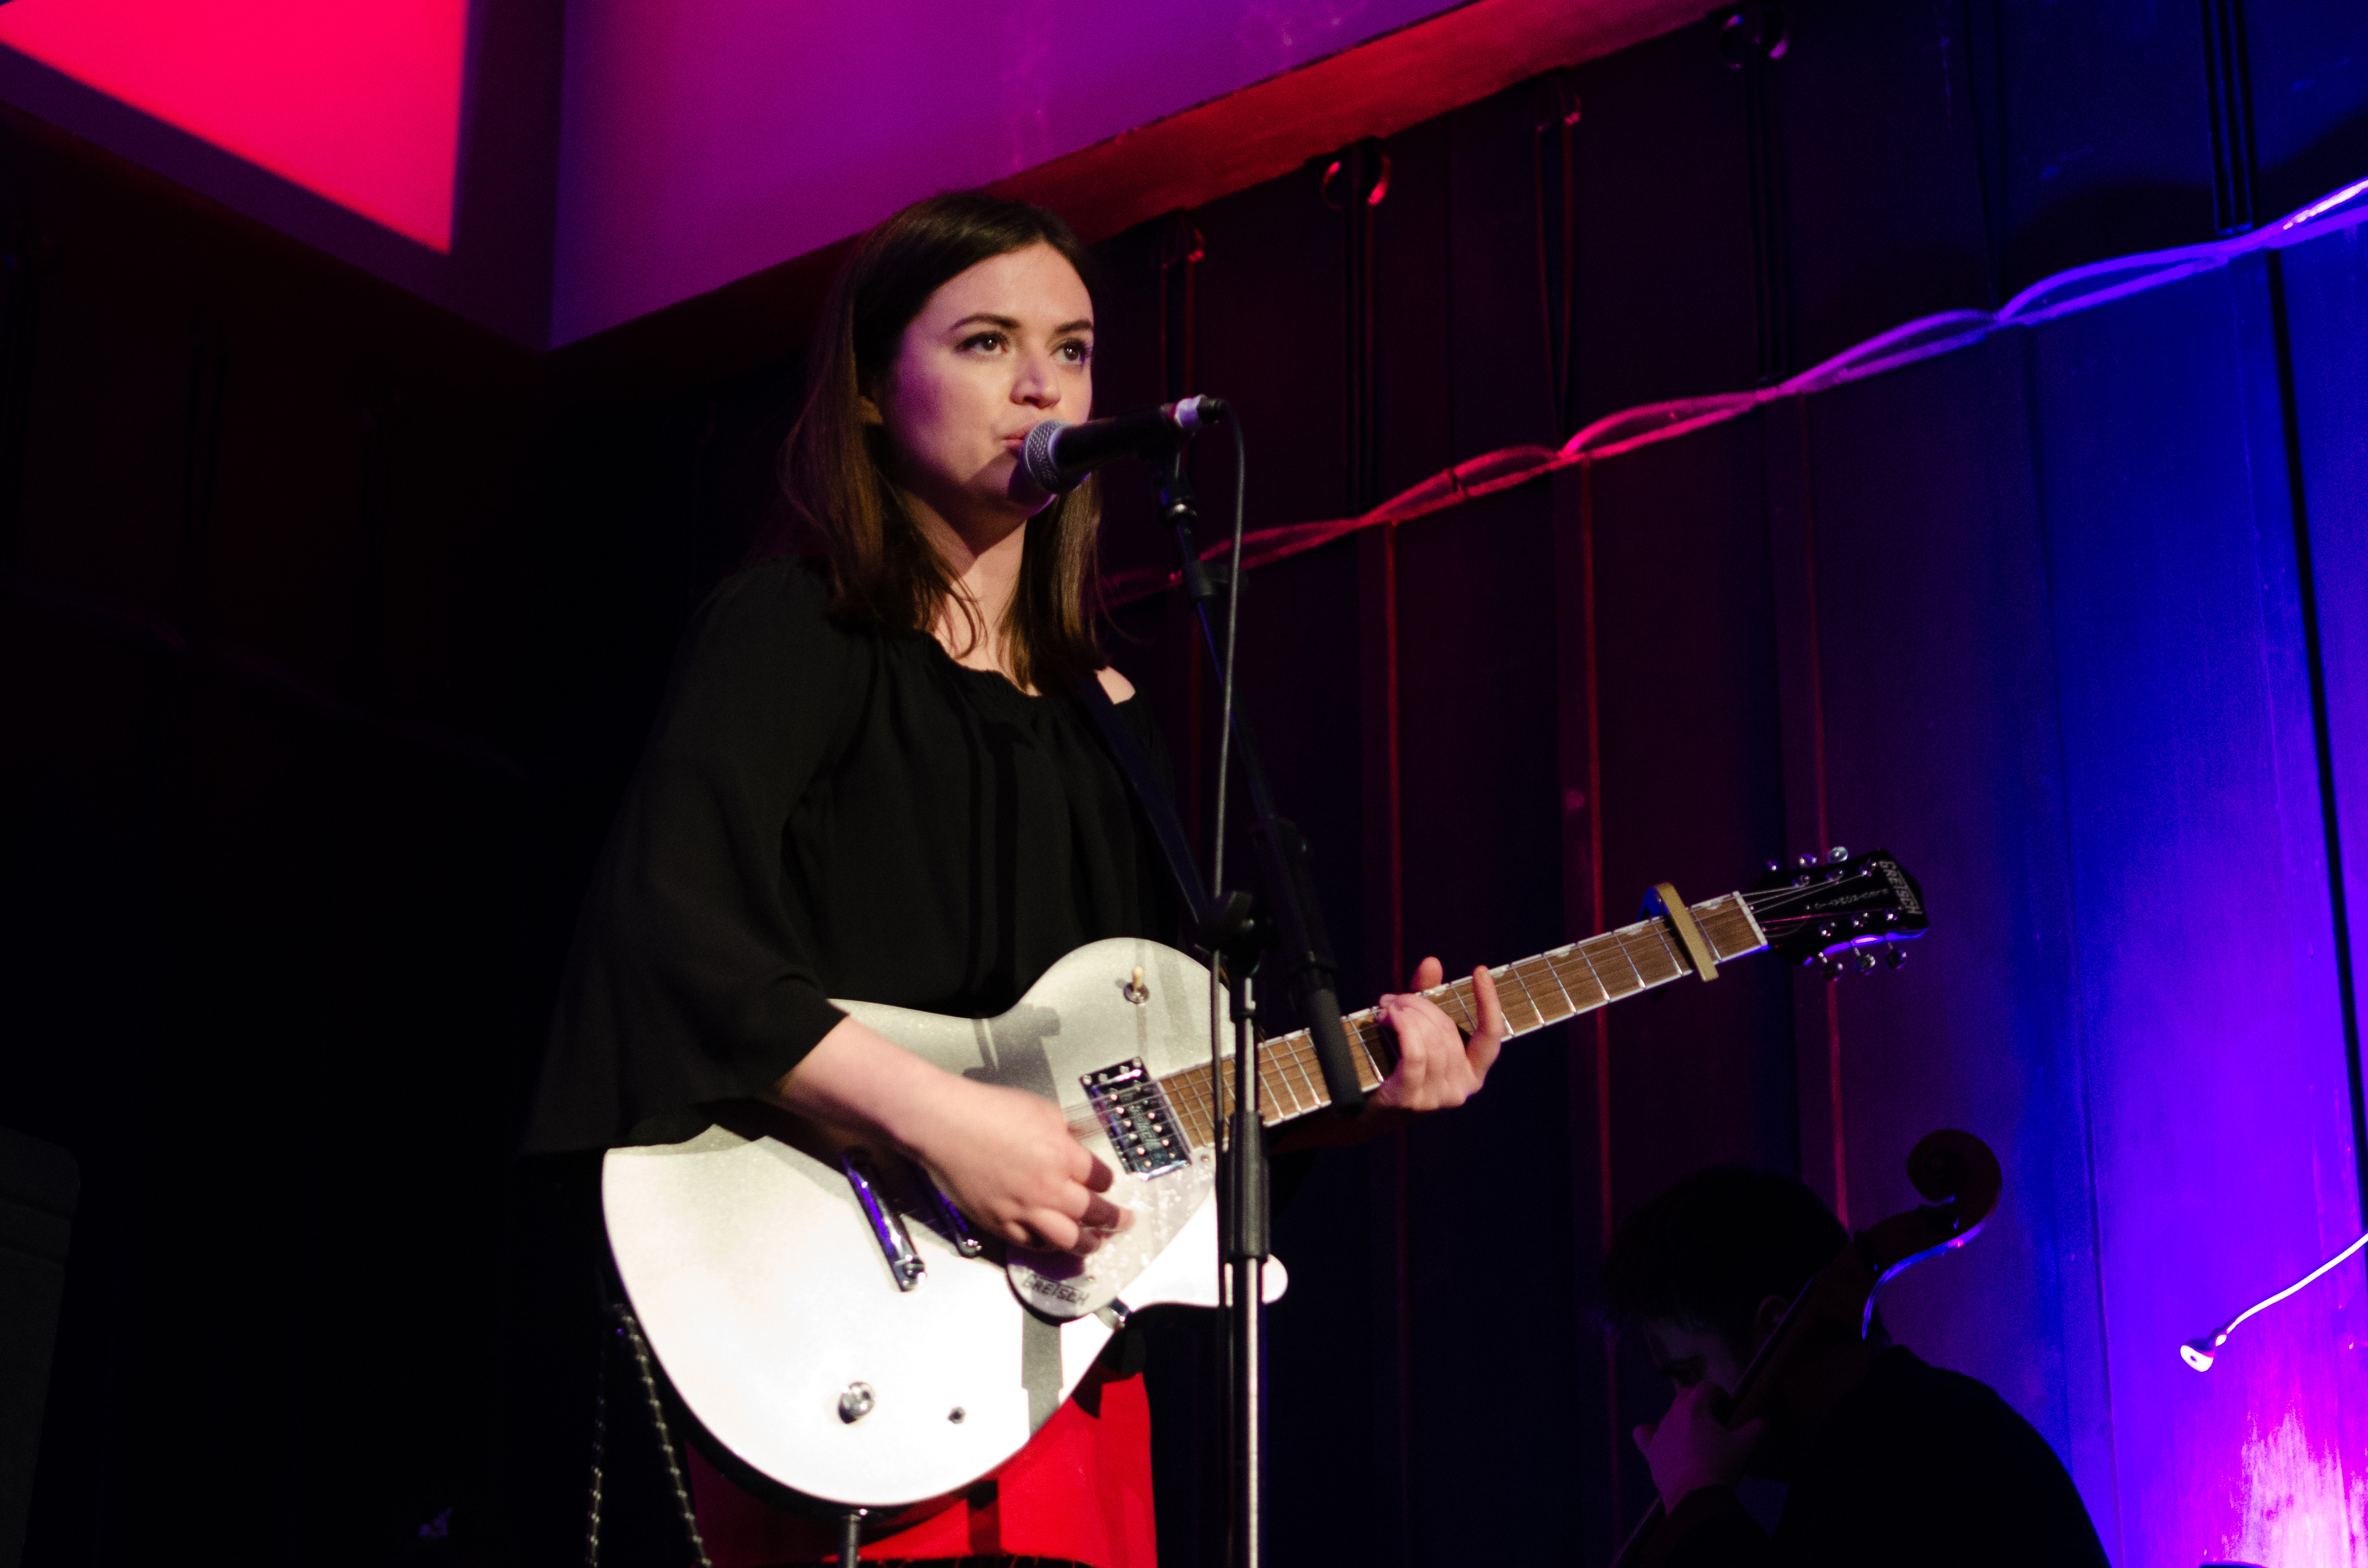 Siobhan Wilson on stage at The Mackintosh Church for Celtic Connections on 3 February 2018